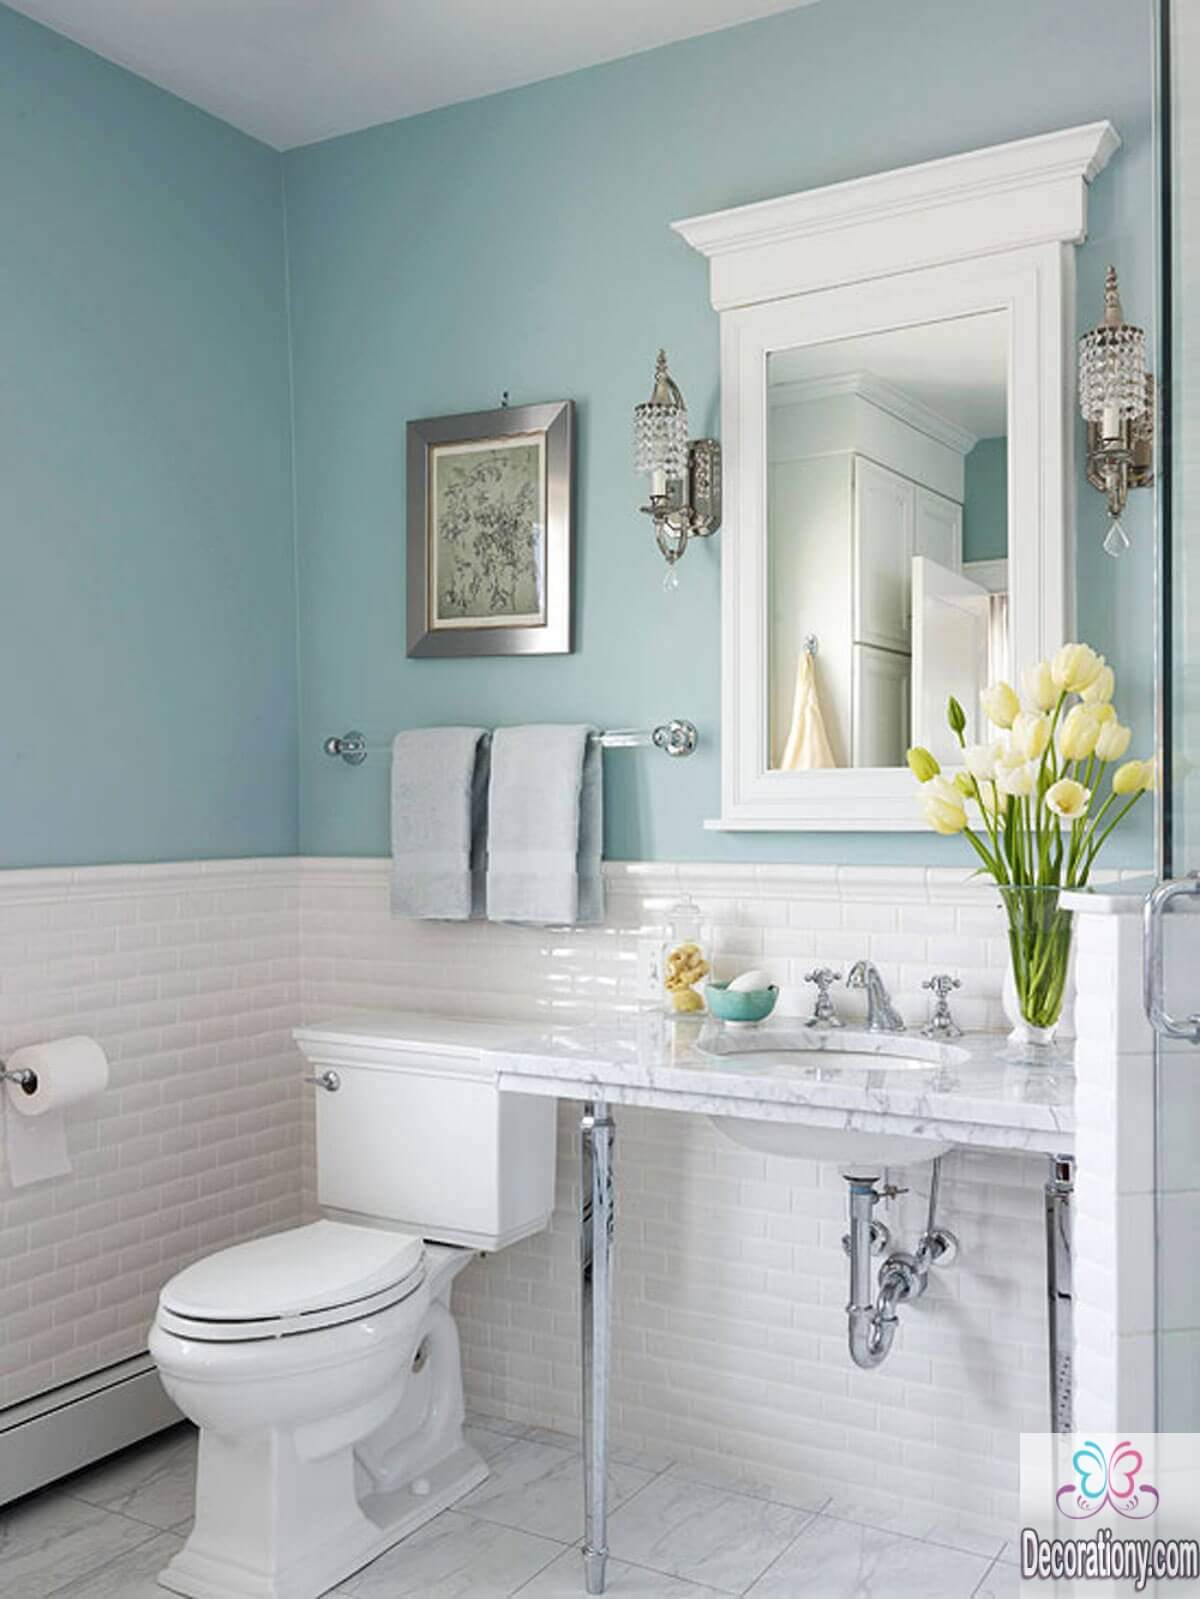 10 affordable colors for small bathrooms decoration y Best bathroom design pictures